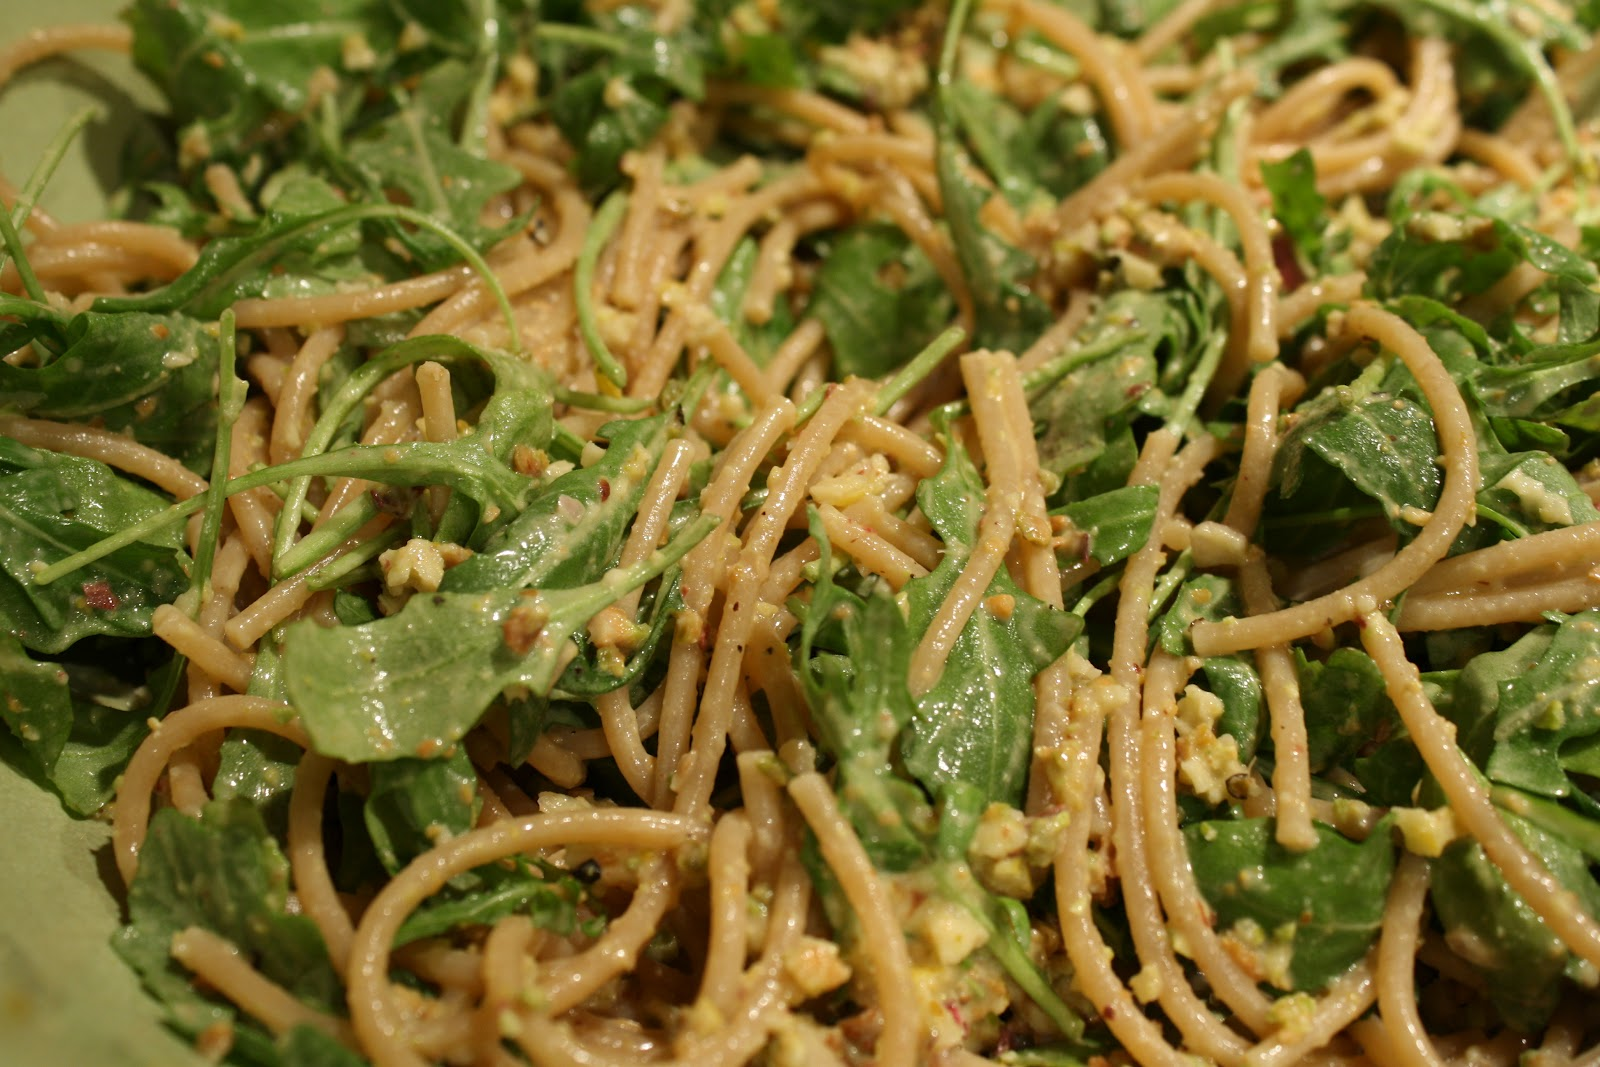 Monday: Whole Wheat Spaghetti with Lemon, Arugula, and Pistachios ...